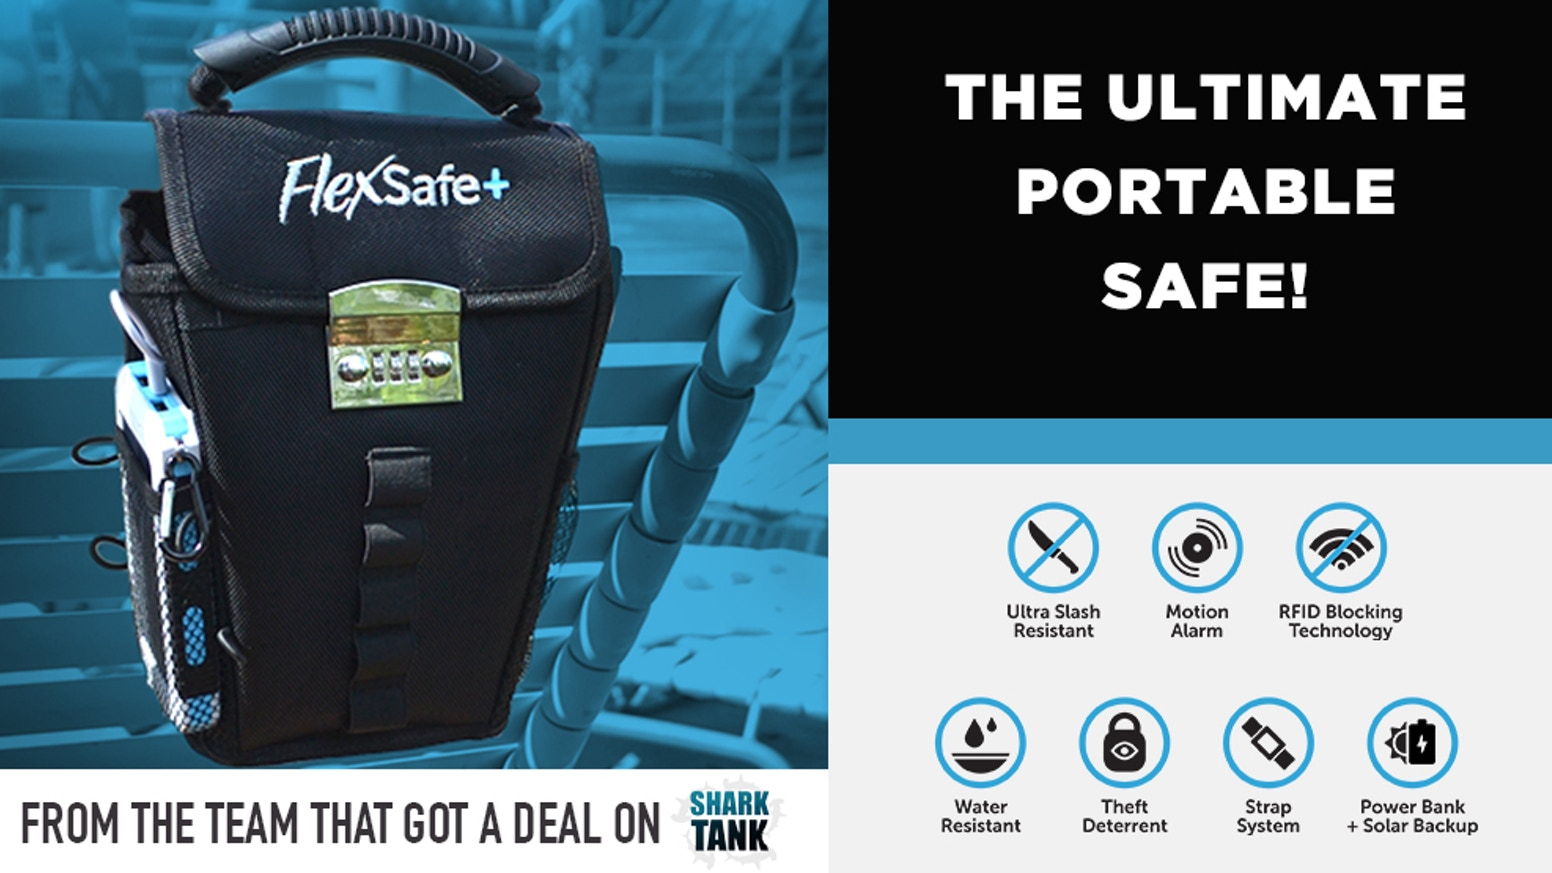 Thanks for all the support! You can still pre-order FlexSafe+ by clicking the link below. It makes a great gift and will be the most useful travel accessory you will ever own!